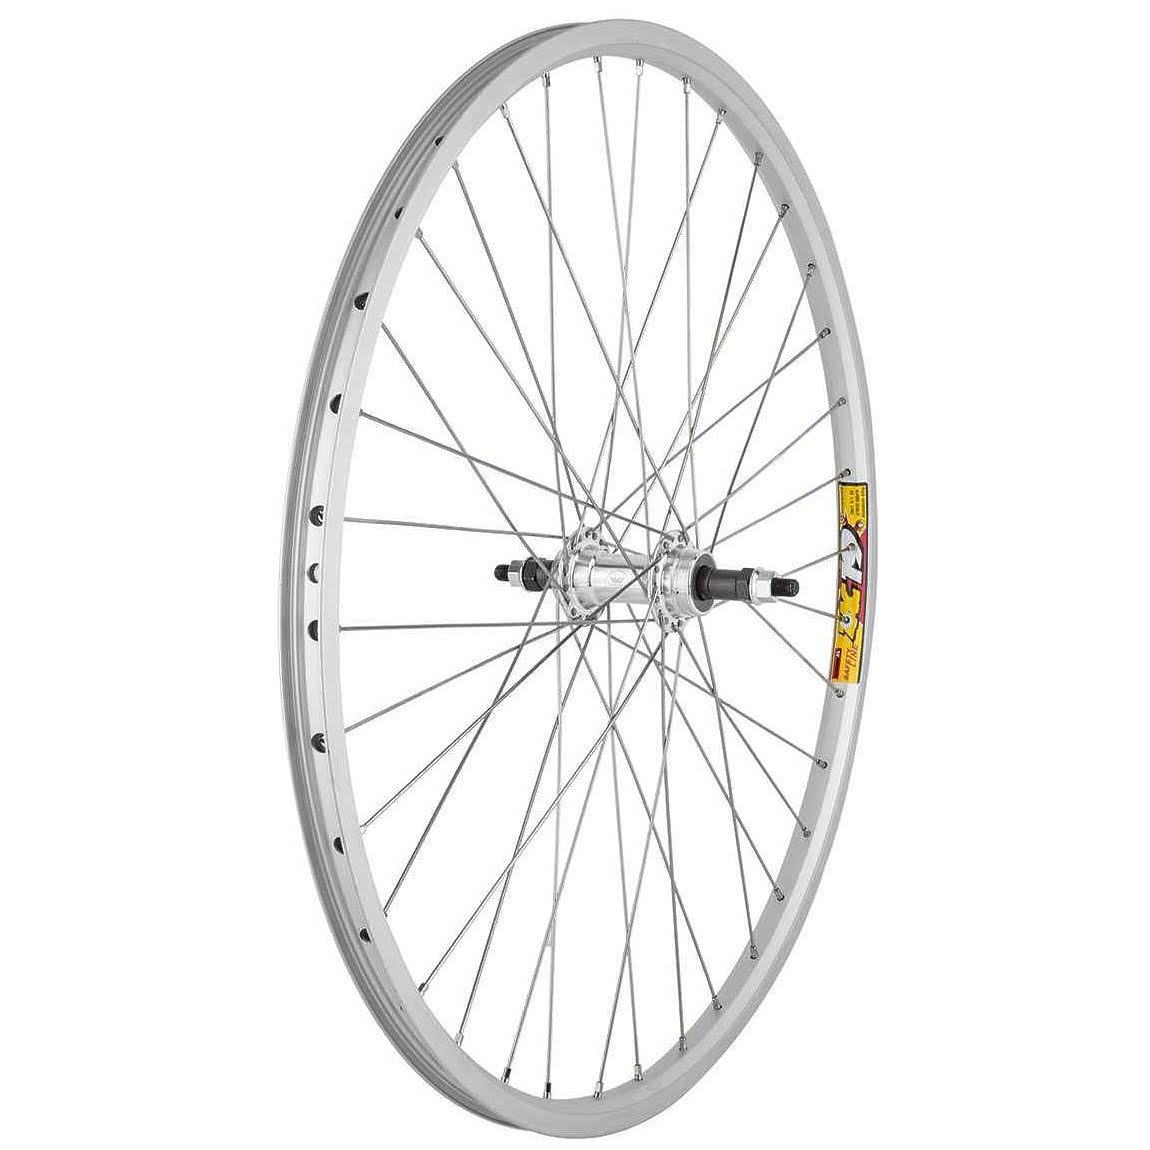 Weinmann Zac19 Rear Wheel - Alloy, 26x1.5